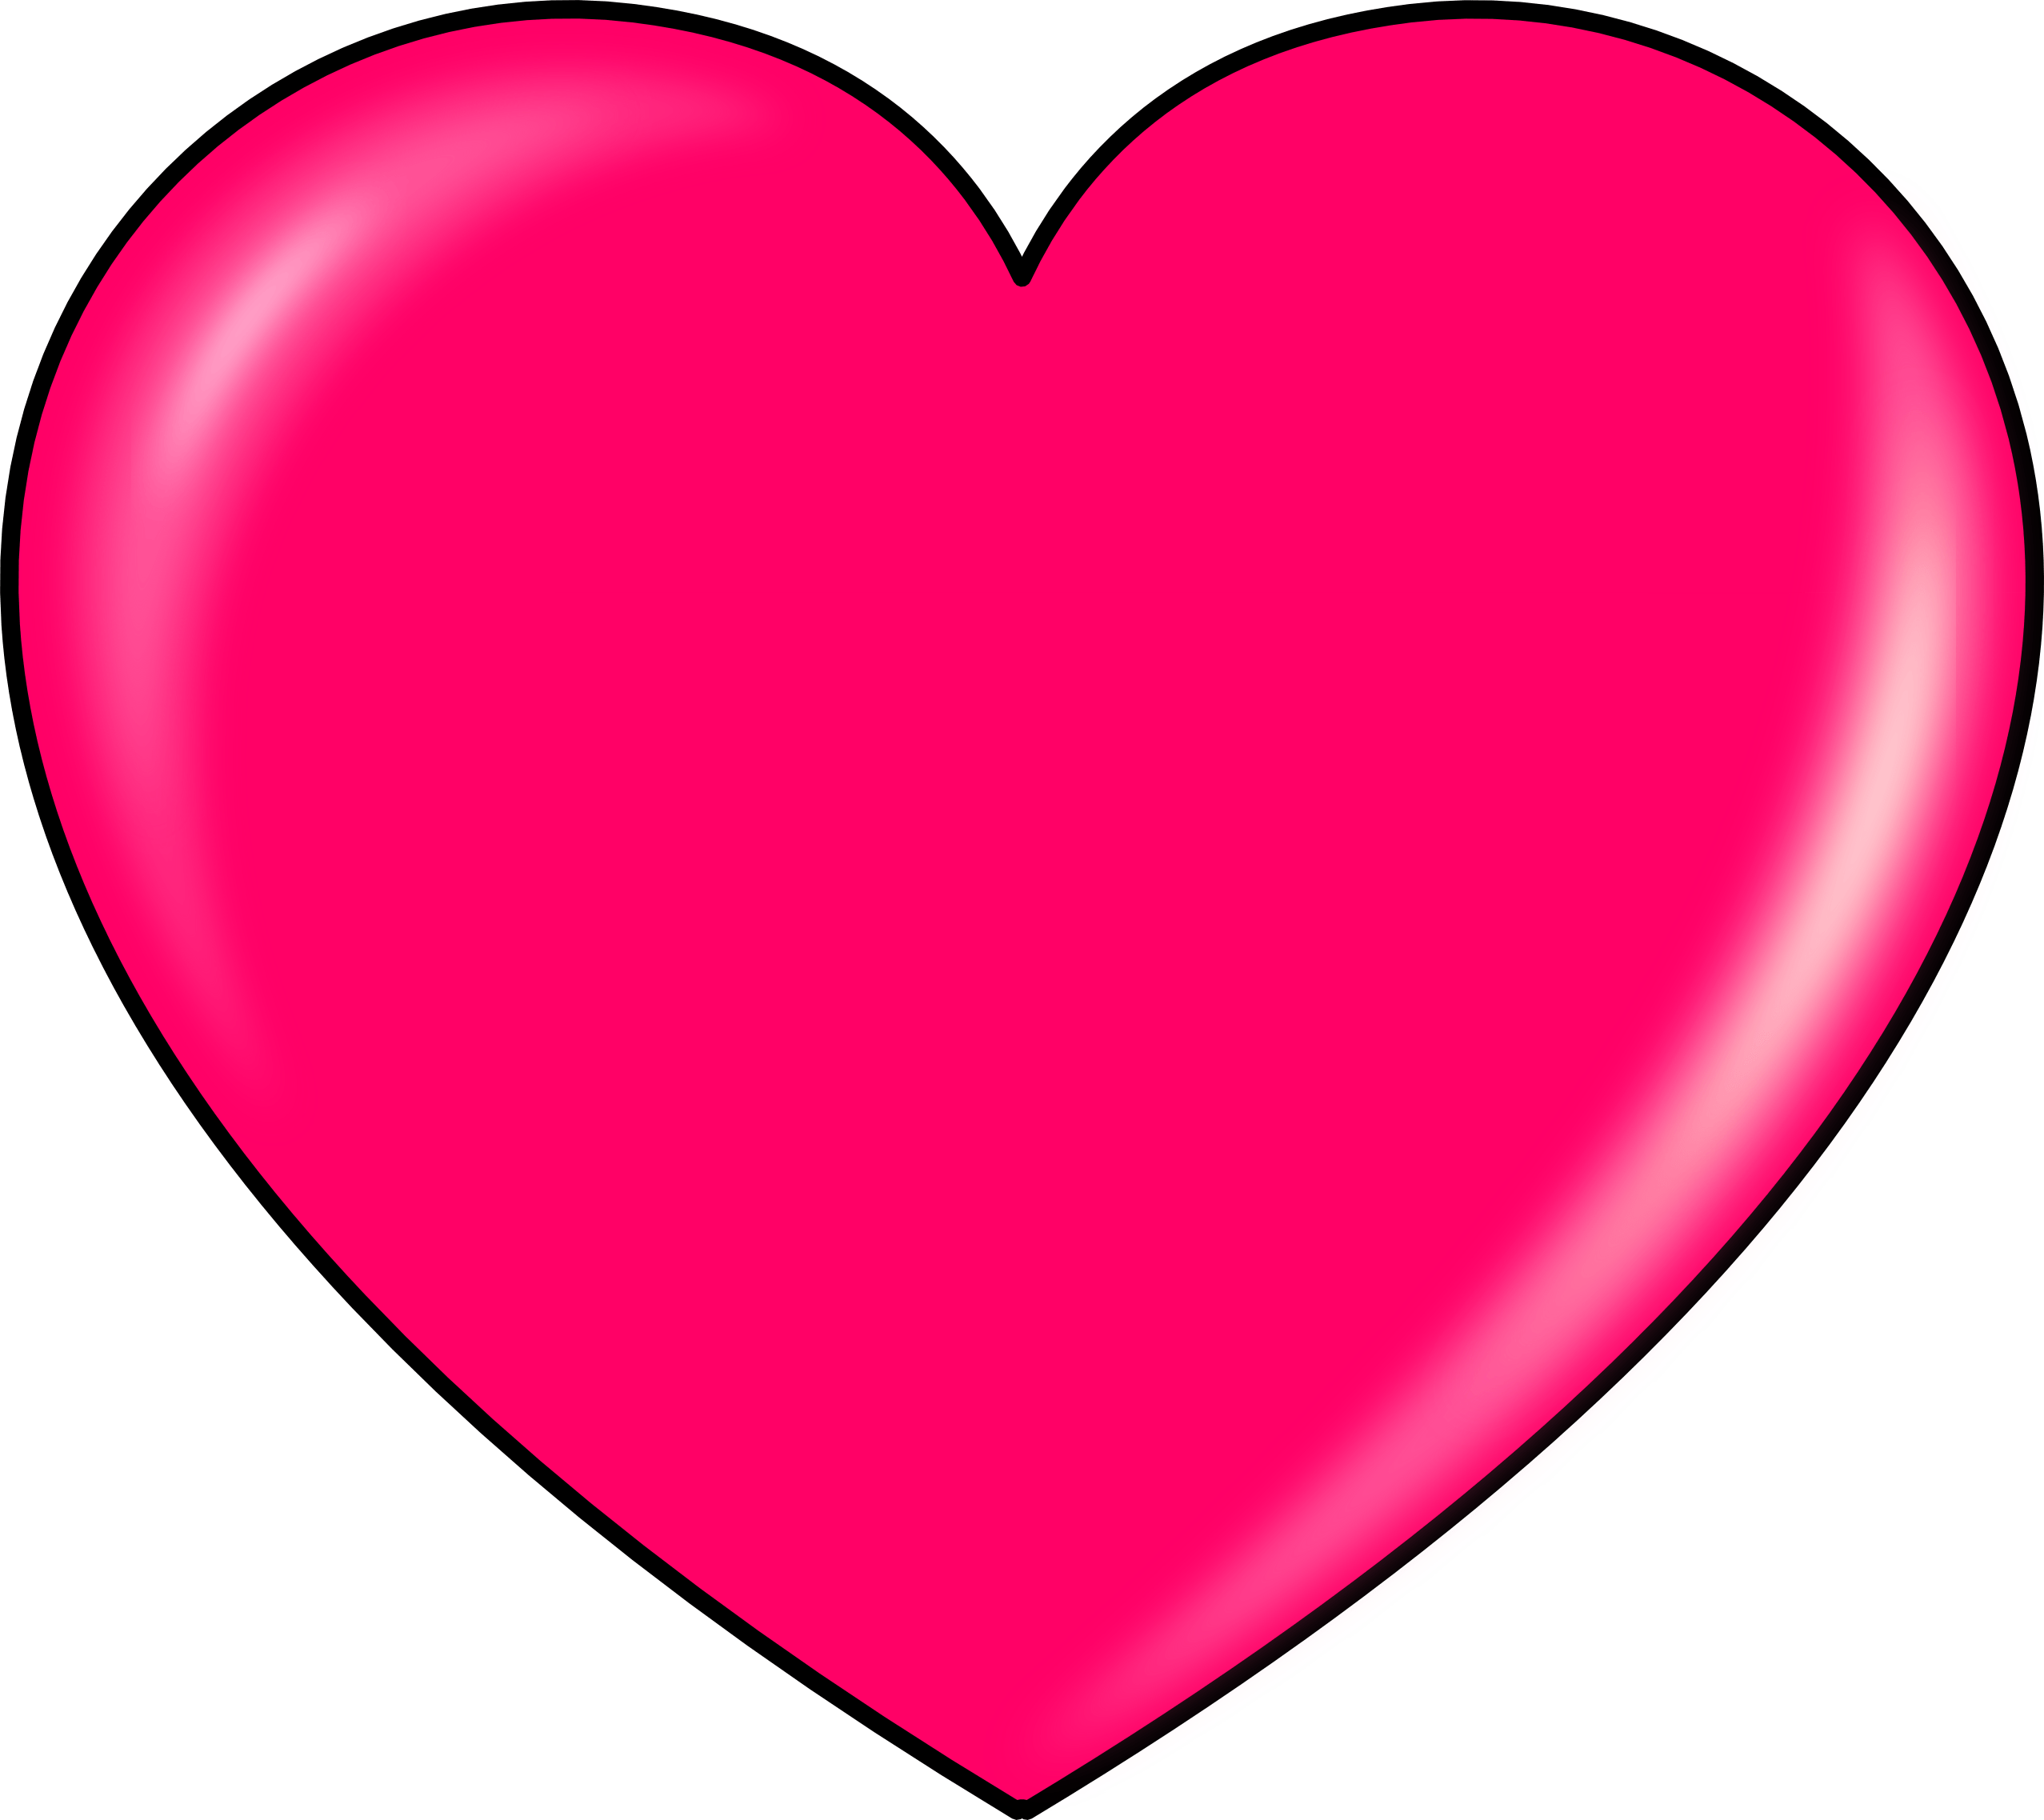 2555x2275 Love Clipart Transparent Heart